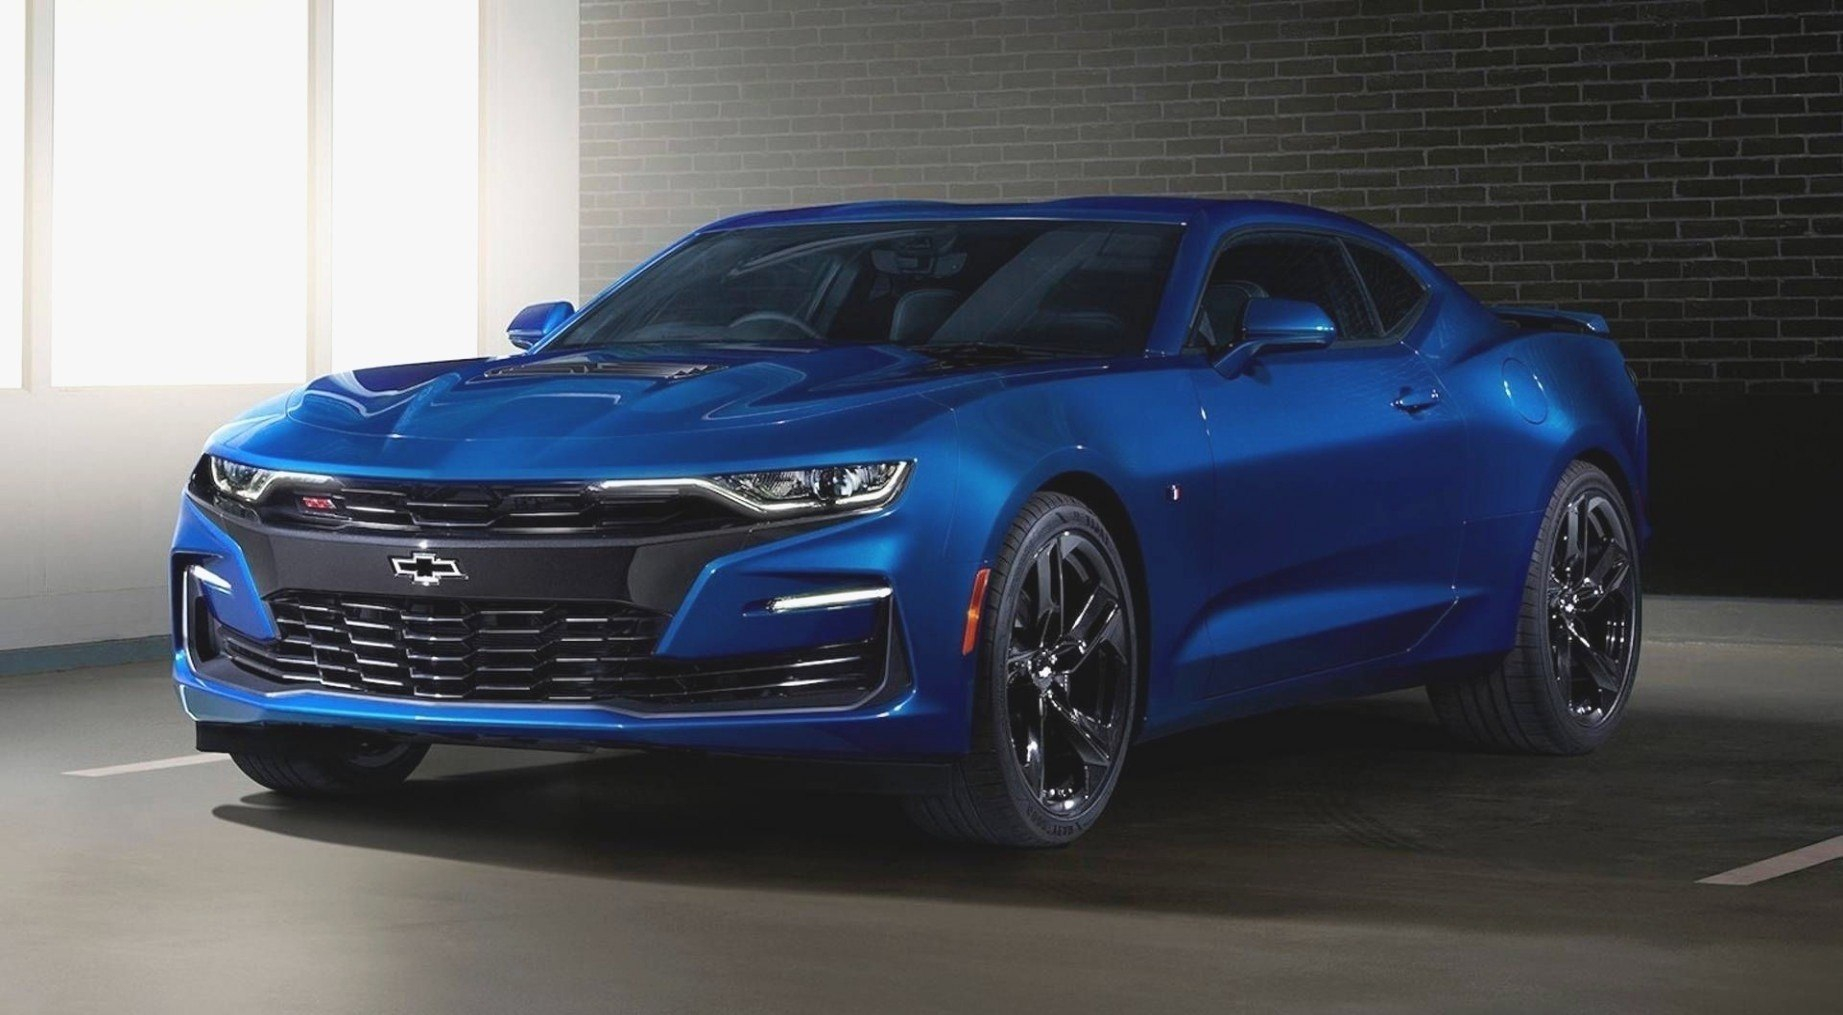 29 All New 2020 Chevy Chevelle Rumors